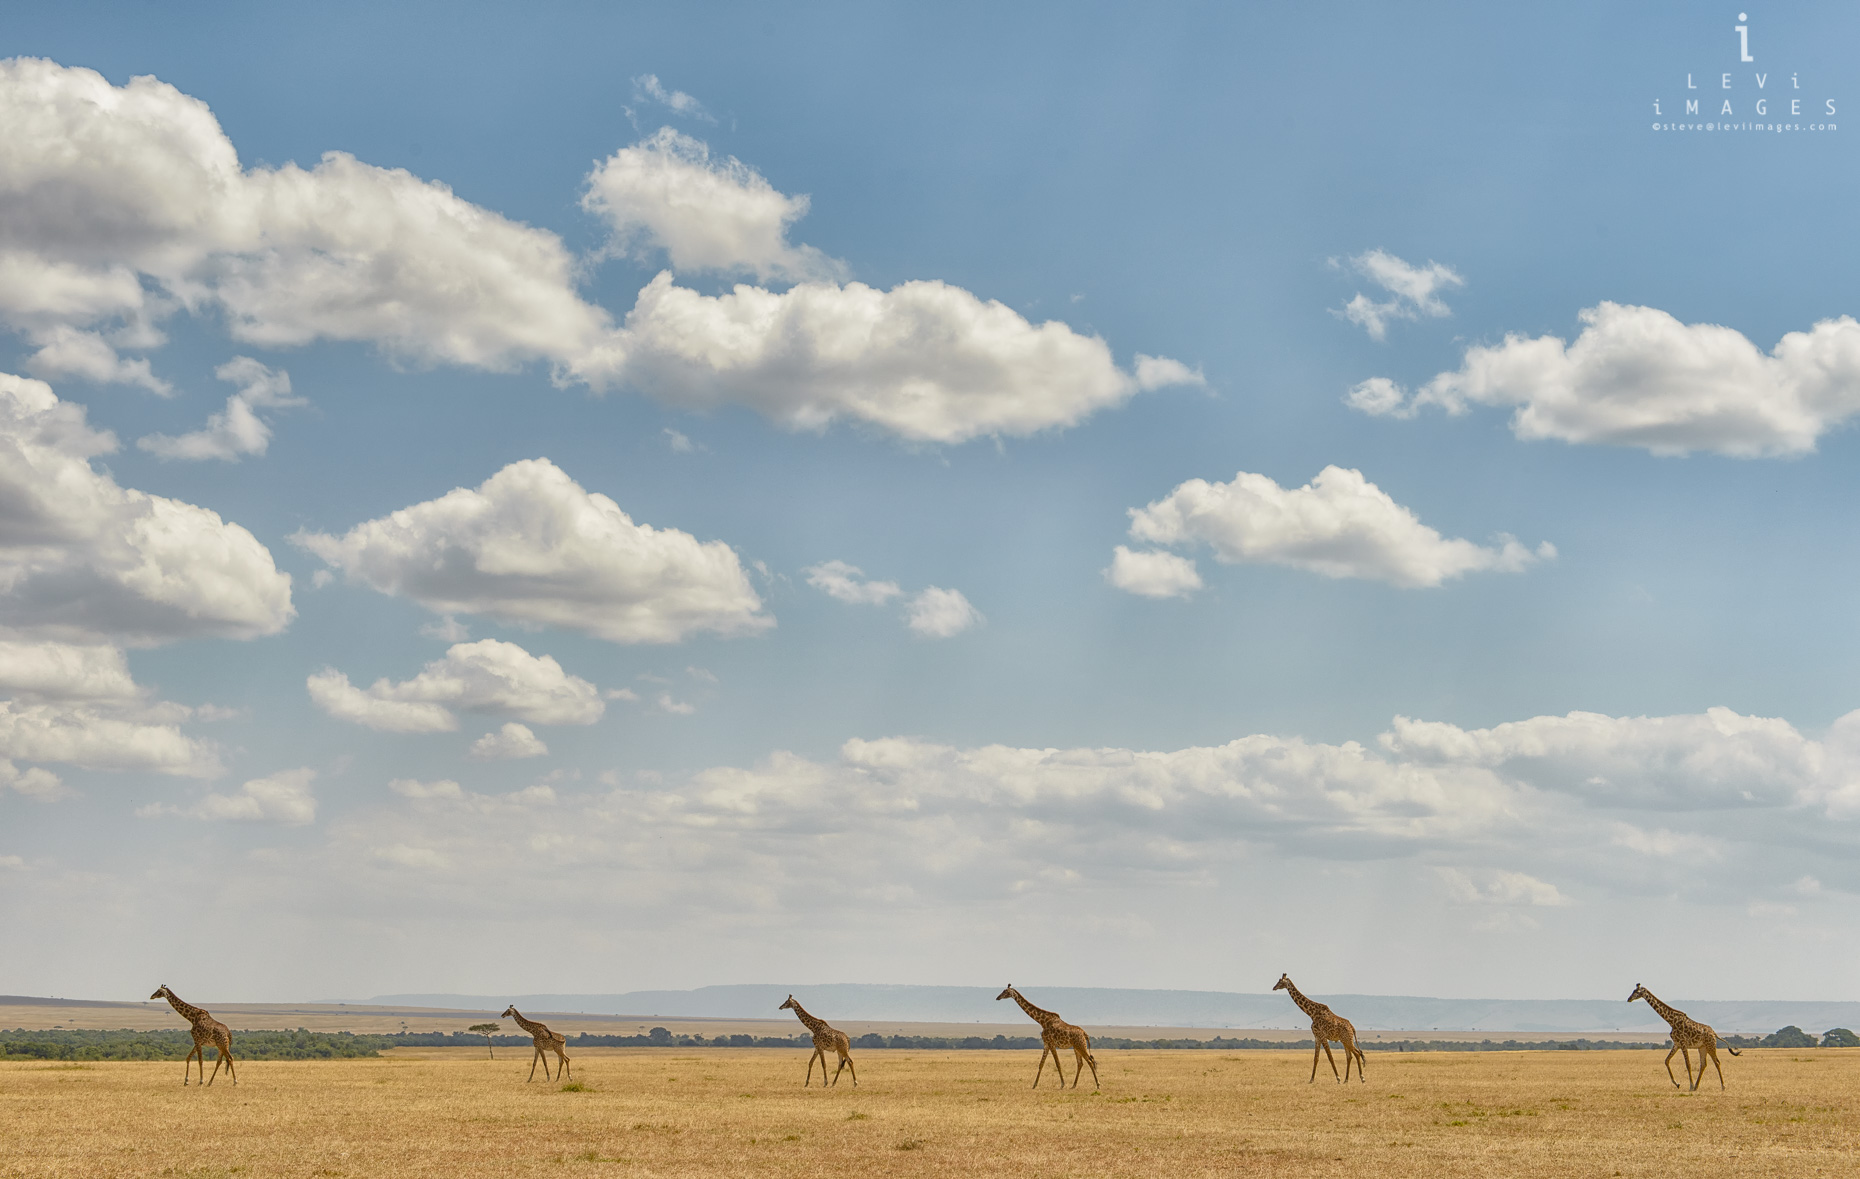 Giraffes (Giraffa), equally-spaced, traverse African savannah